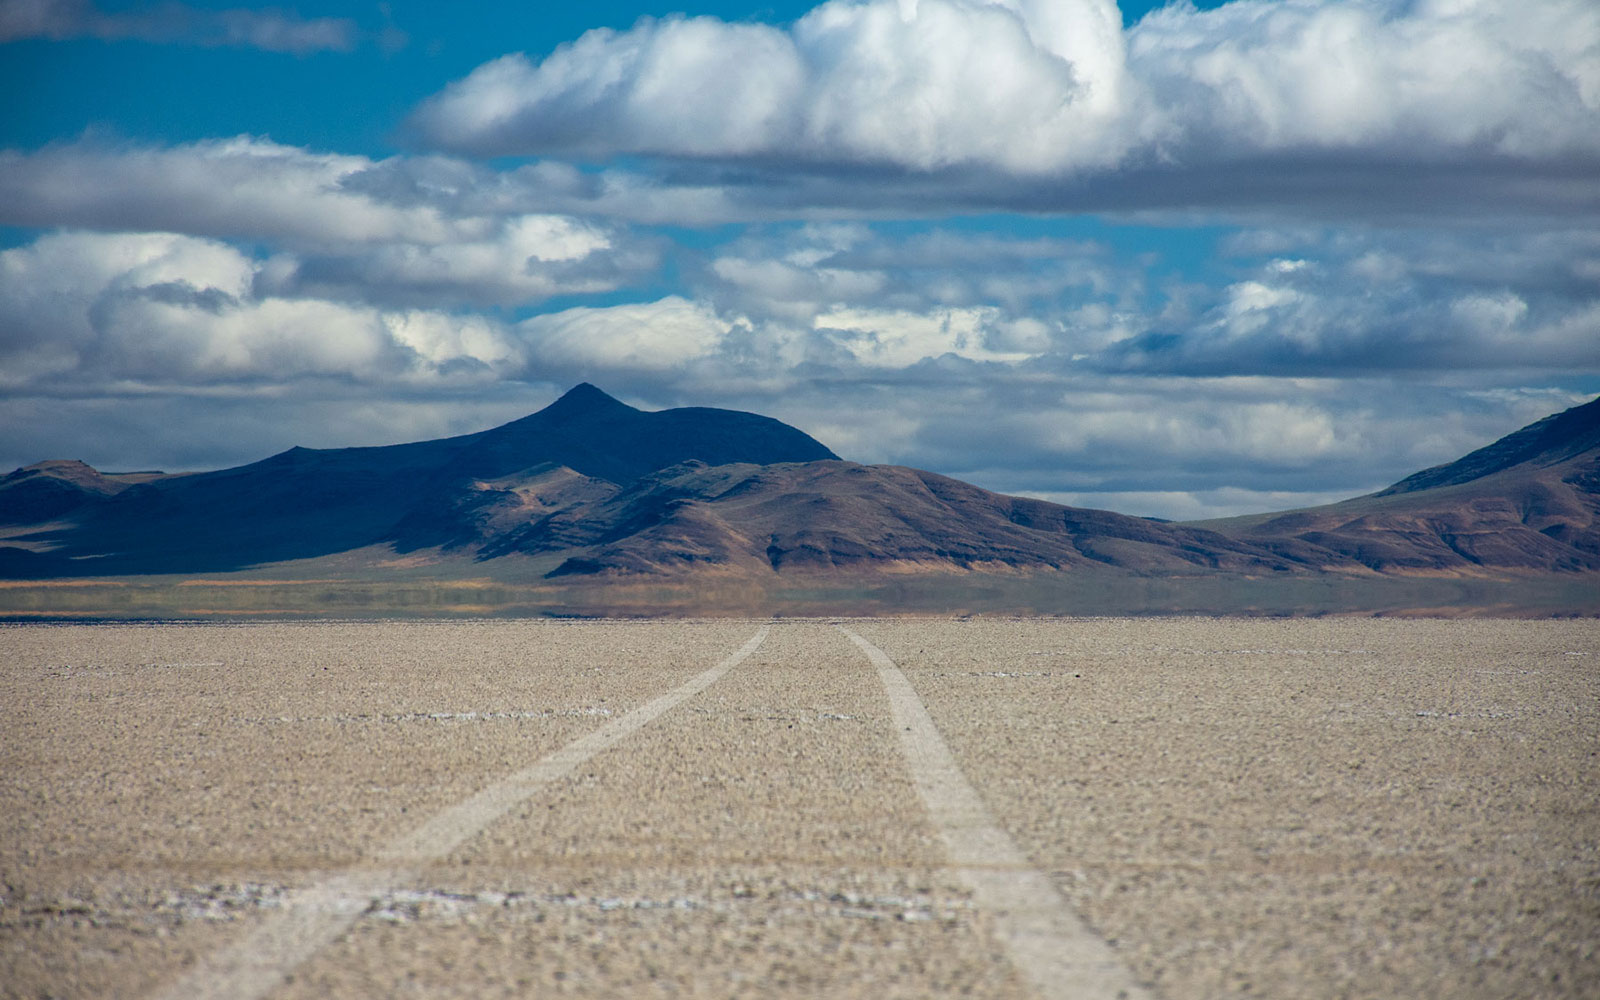 Car tracks into the distance at the Alvord Desert, Oregon